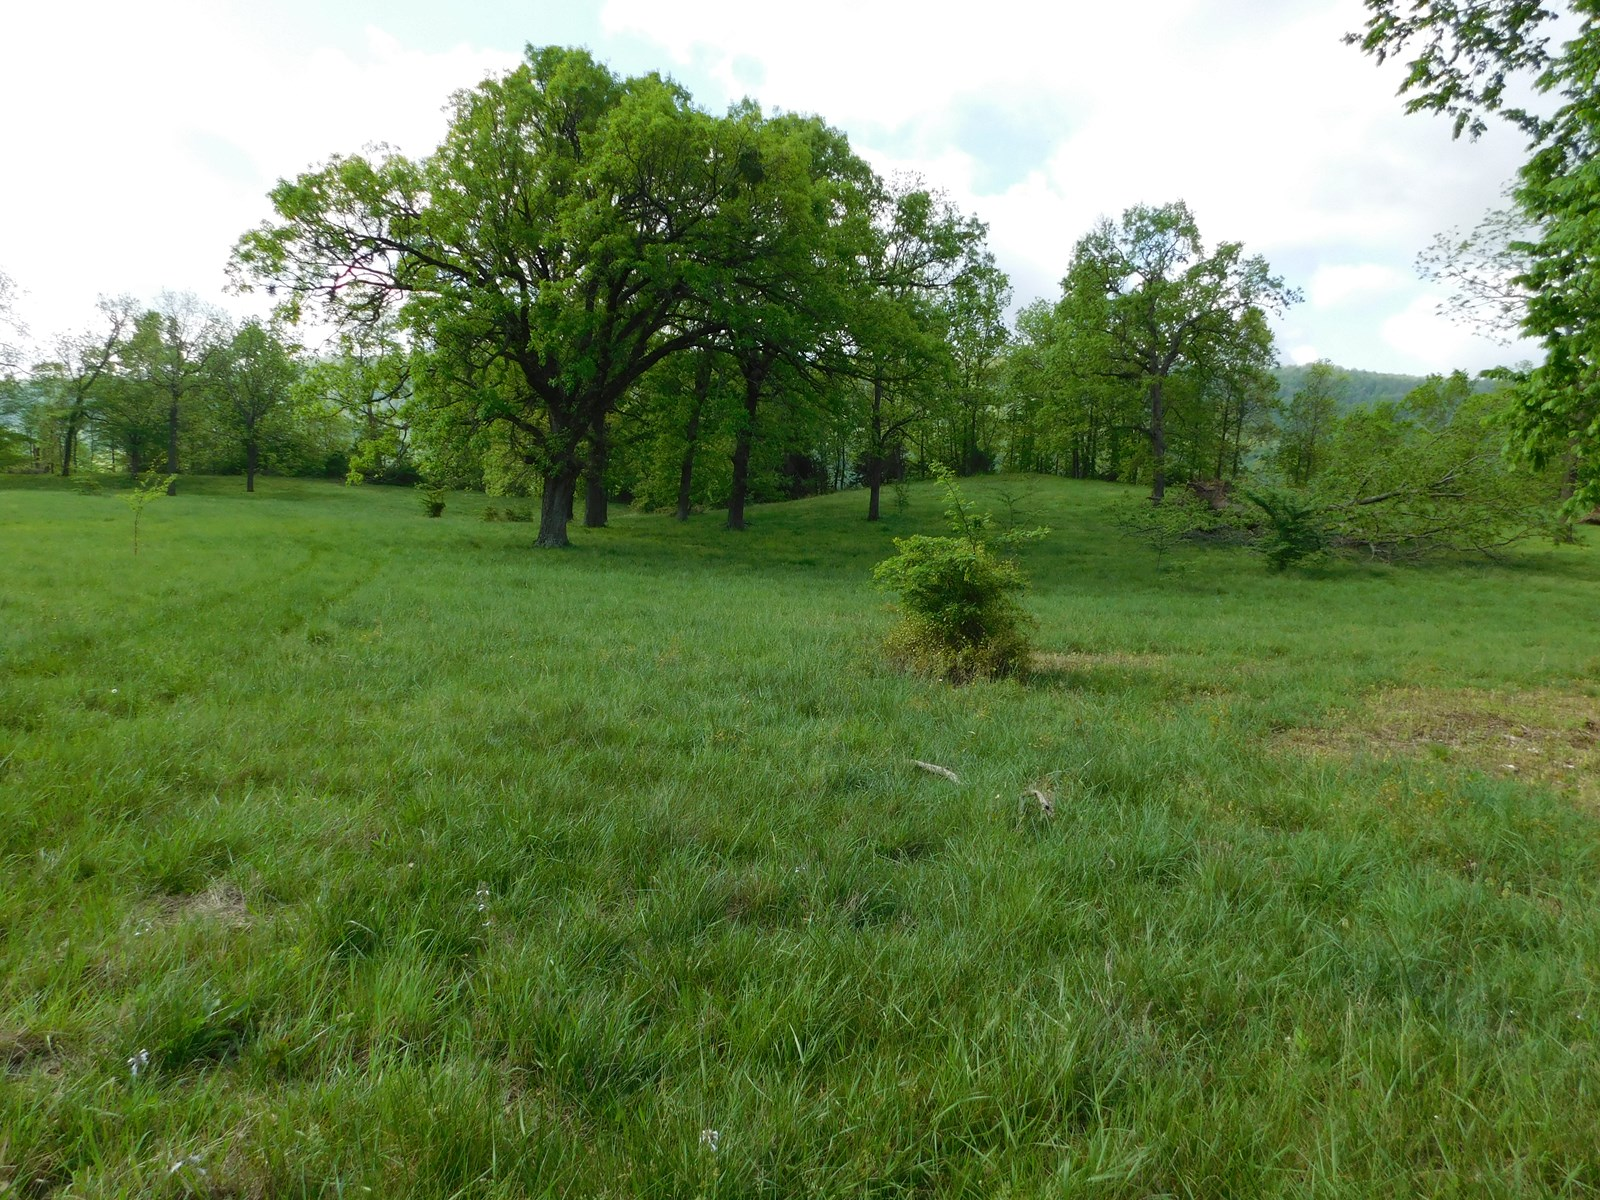 LOT 2 | ARKANSAS OZARK MOUNTAINS | NEWTON COUNTY | PROPERTY